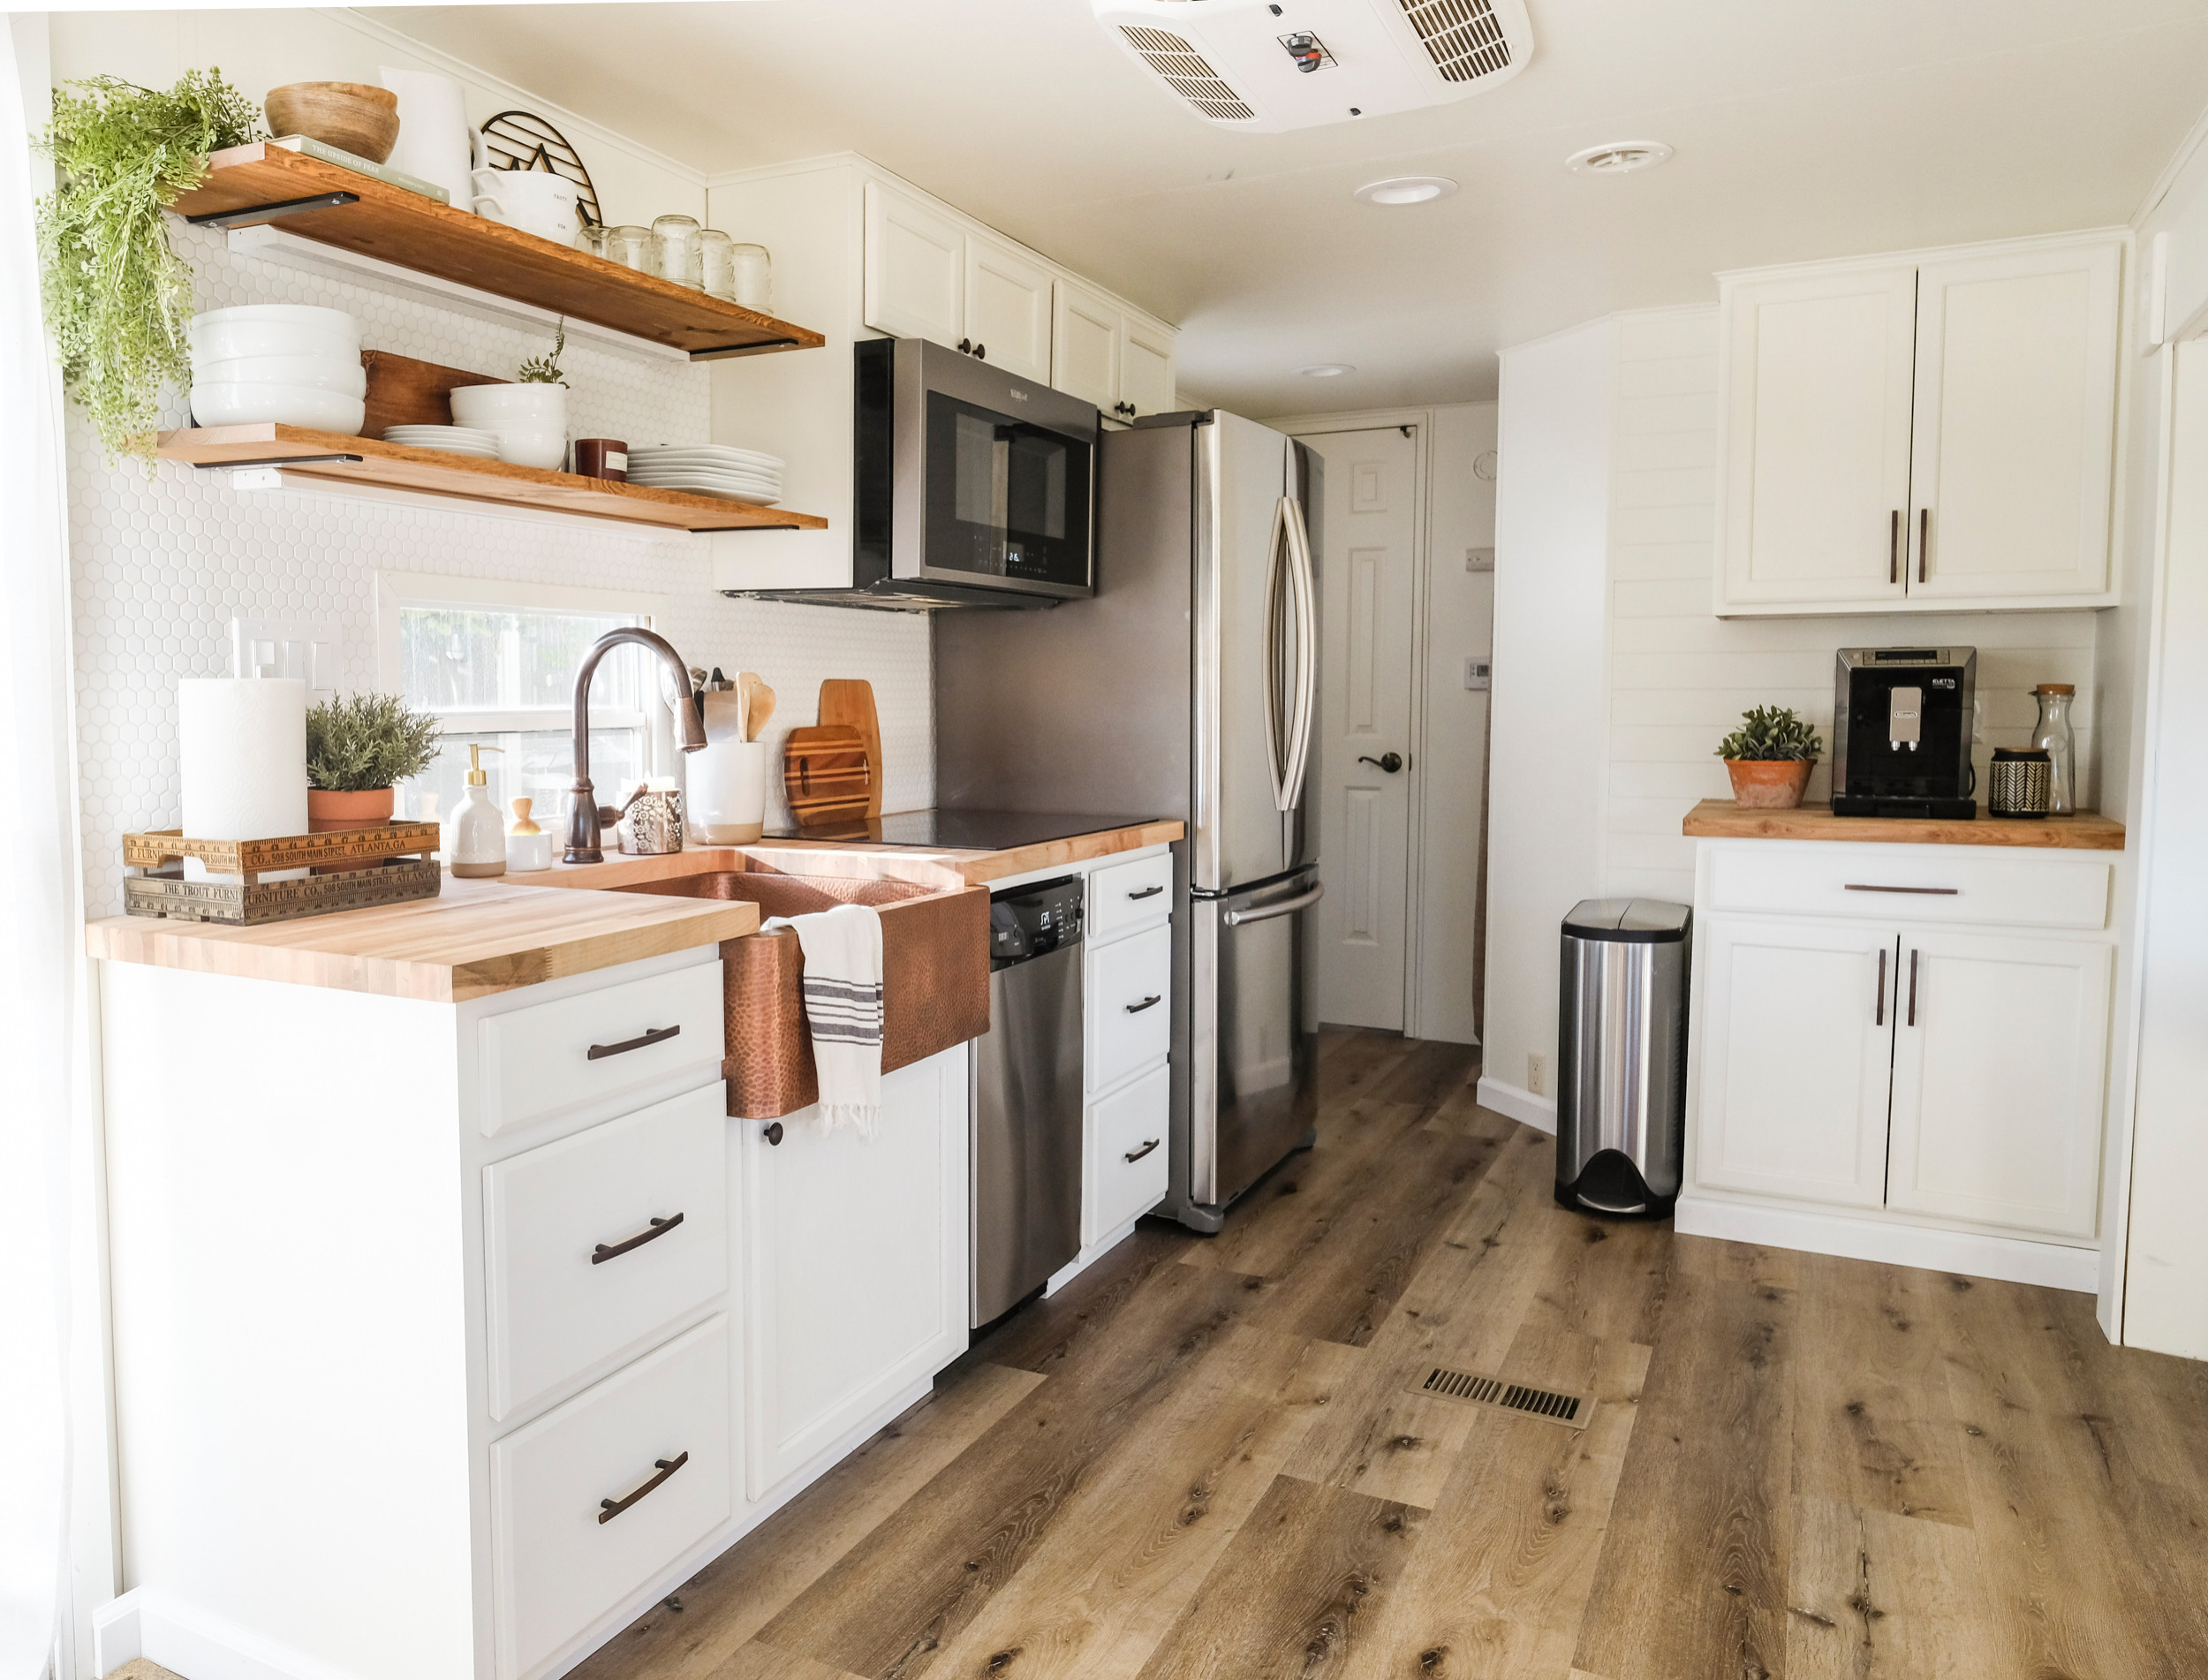 75 Beautiful Farmhouse Laminate Floor Kitchen Pictures Ideas January 2021 Houzz